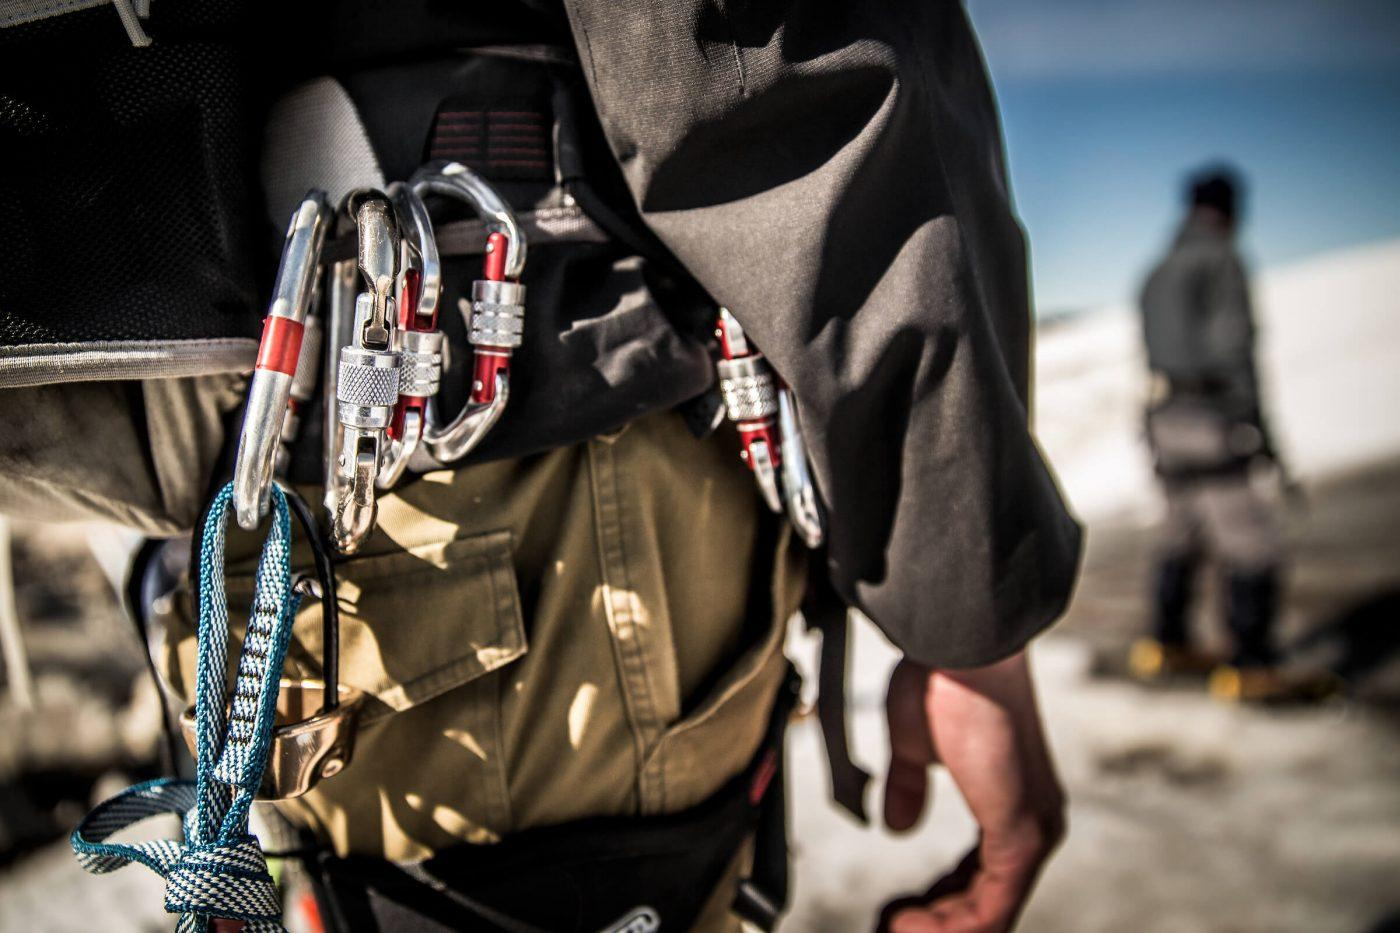 Hiking gear on a Greenland Travel guide in East Greenland. By Mads Pihl